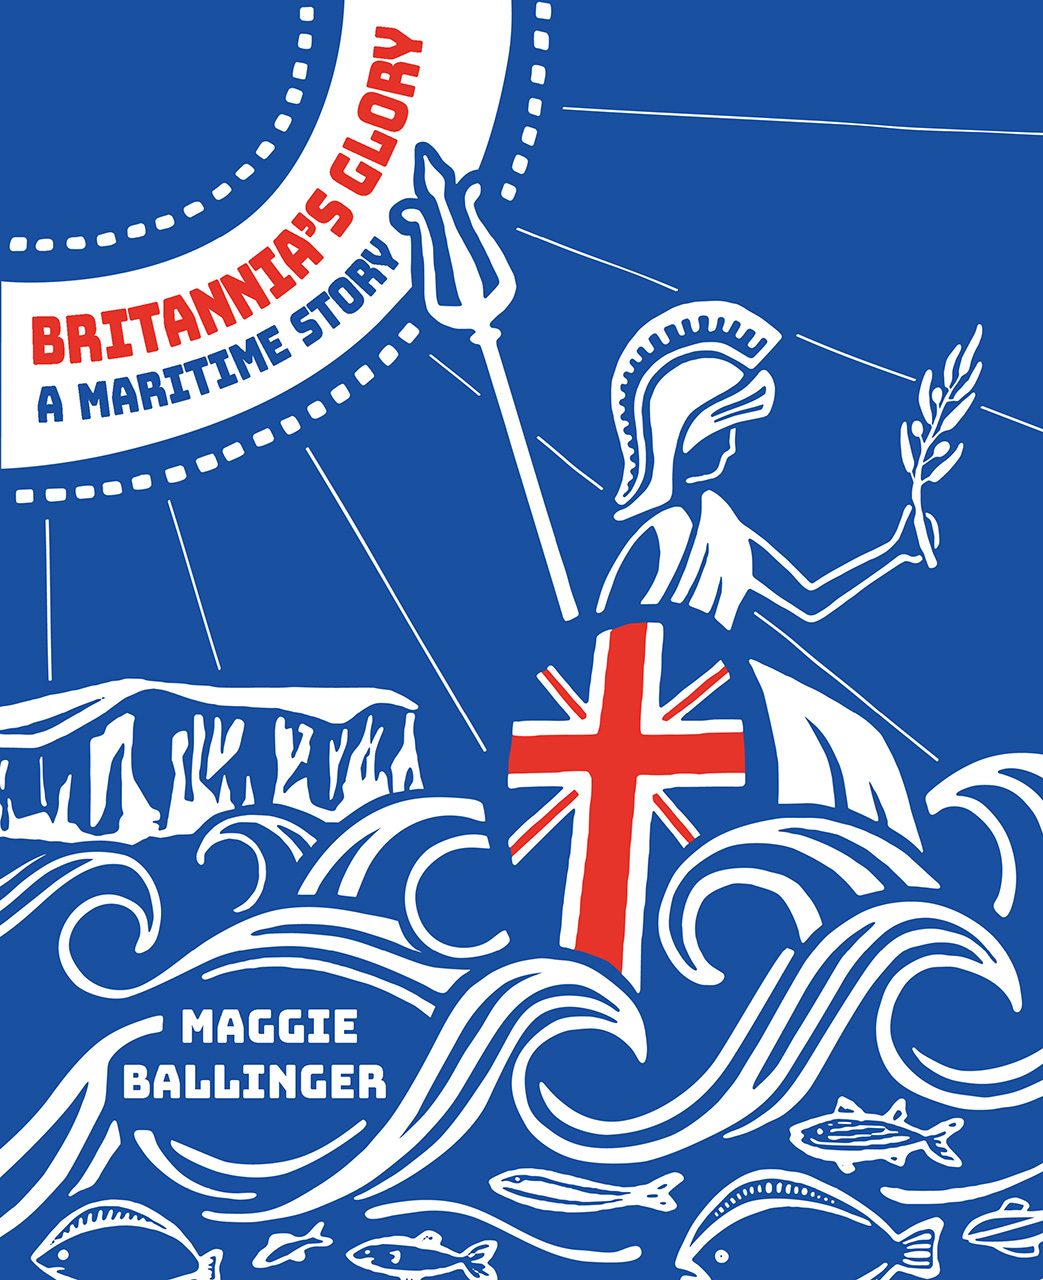 Britannia's Glory—A Maritime Story: Great Britian's Seafaring Story Told in Verse